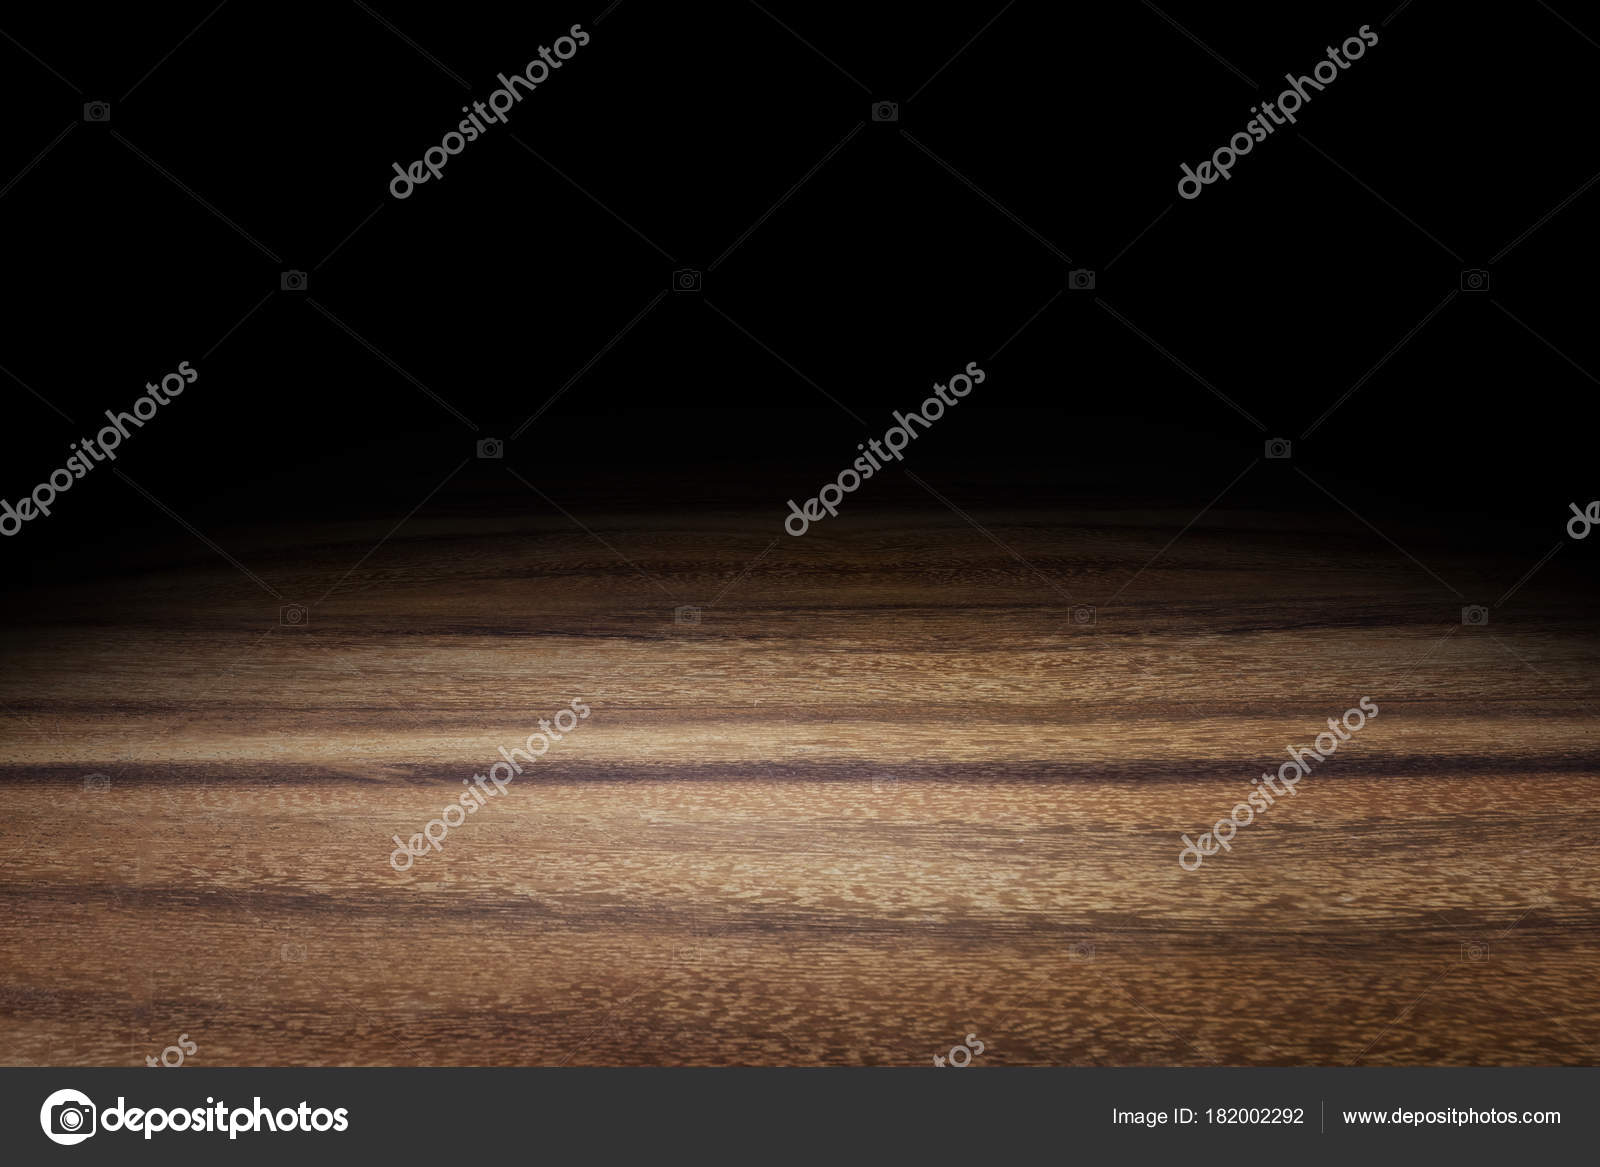 dark brown hardwood floor texture. Delighful Texture Dark Brown Wood Floor Texture Perspective Background For Display Or Montage  Of ProductMock Up Template Your Design U2014 Photo By Weedezign Intended Brown Hardwood Floor Texture N